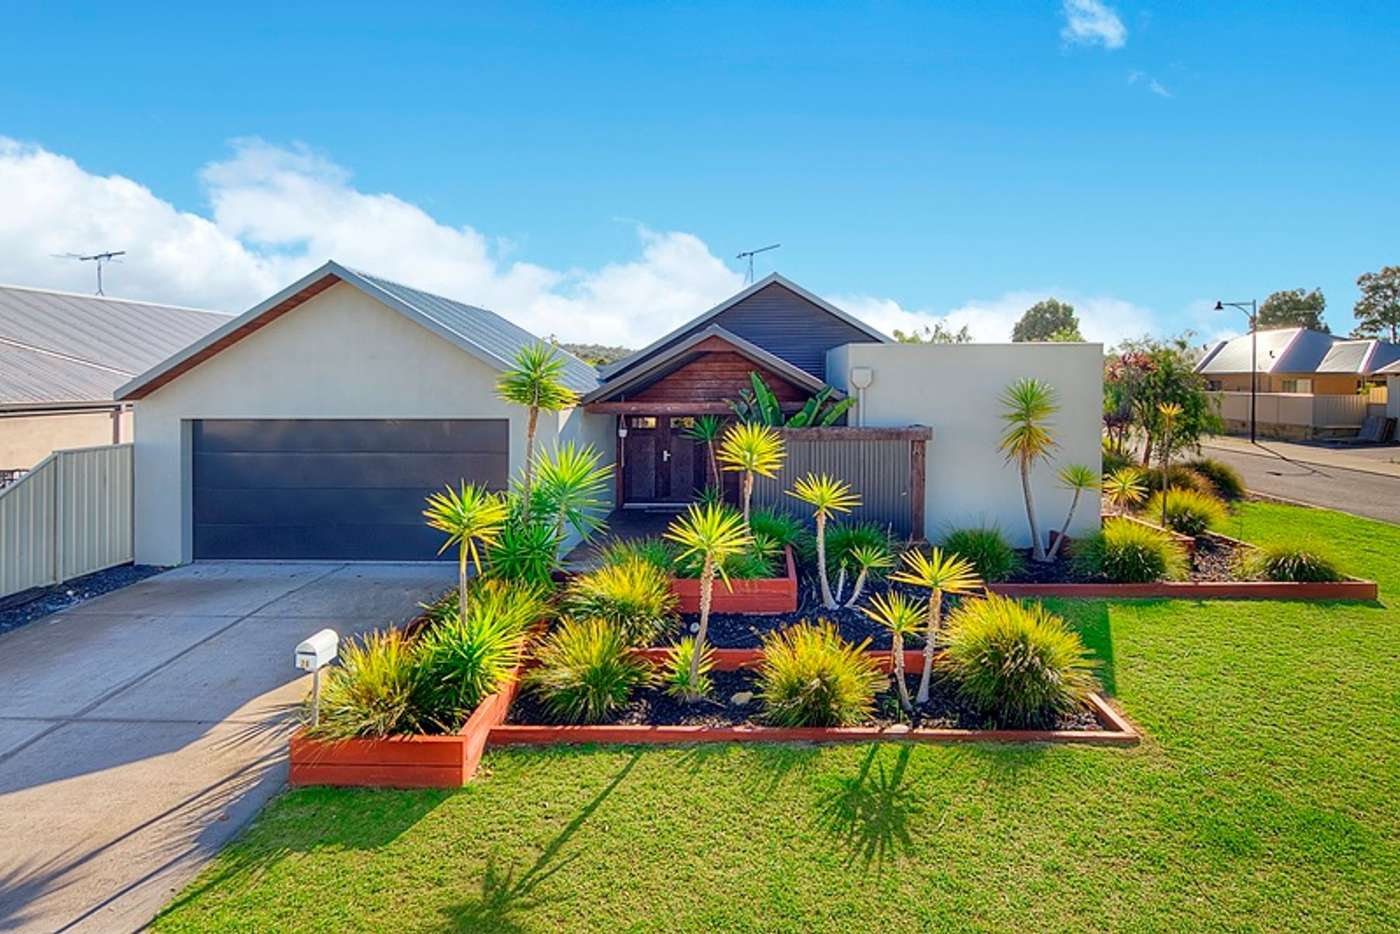 Main view of Homely house listing, 28 Prestwick Road, Dunsborough WA 6281